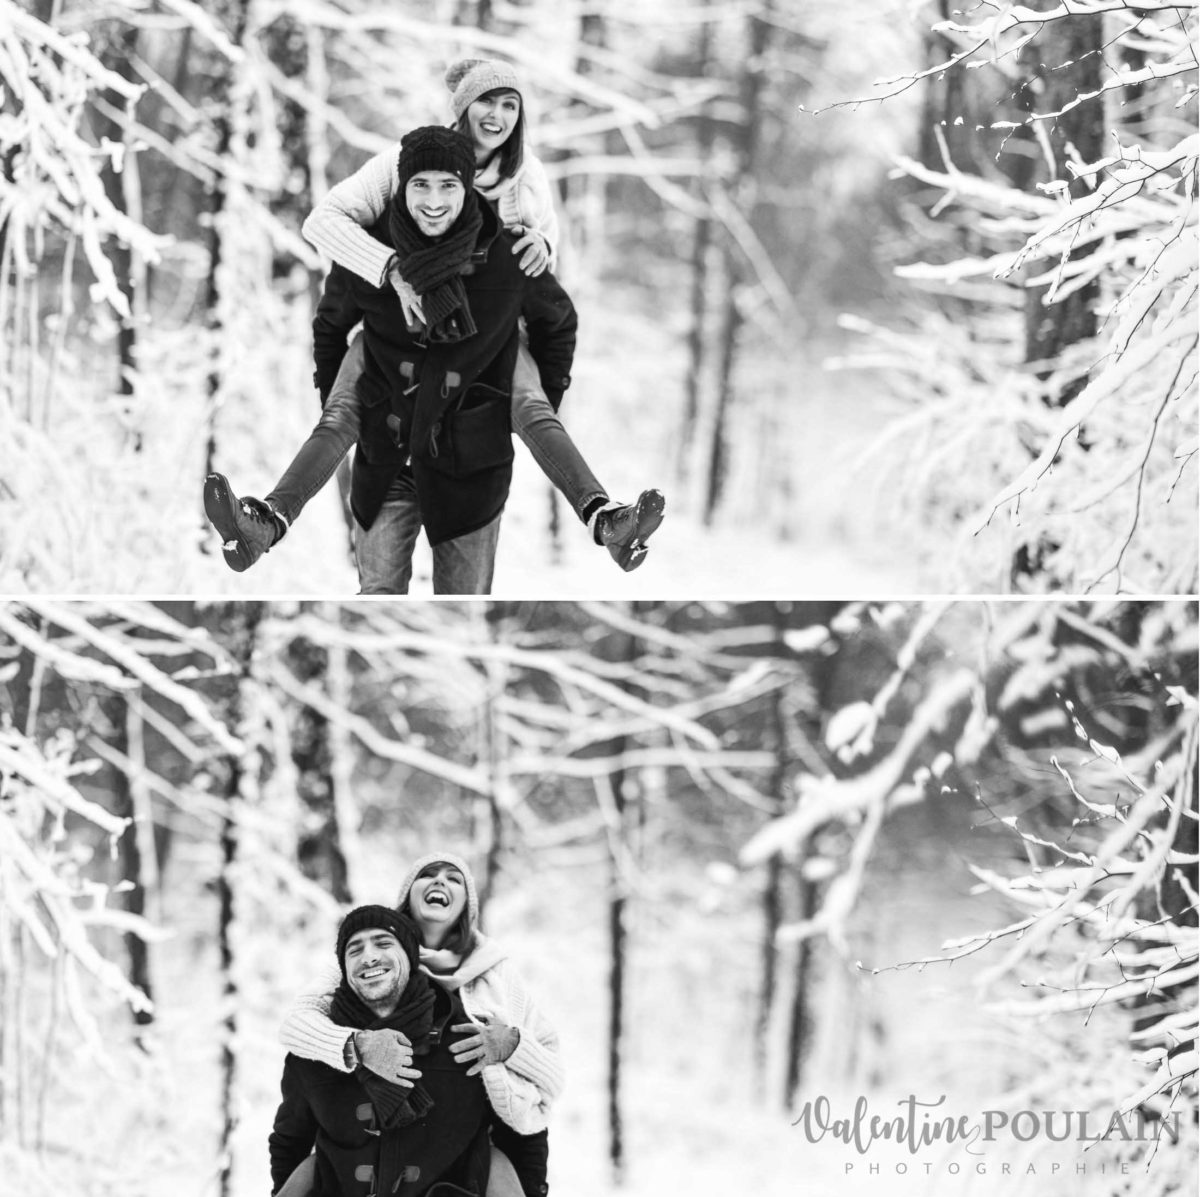 Shooting couple hivernal - Valentine Poulain mdr